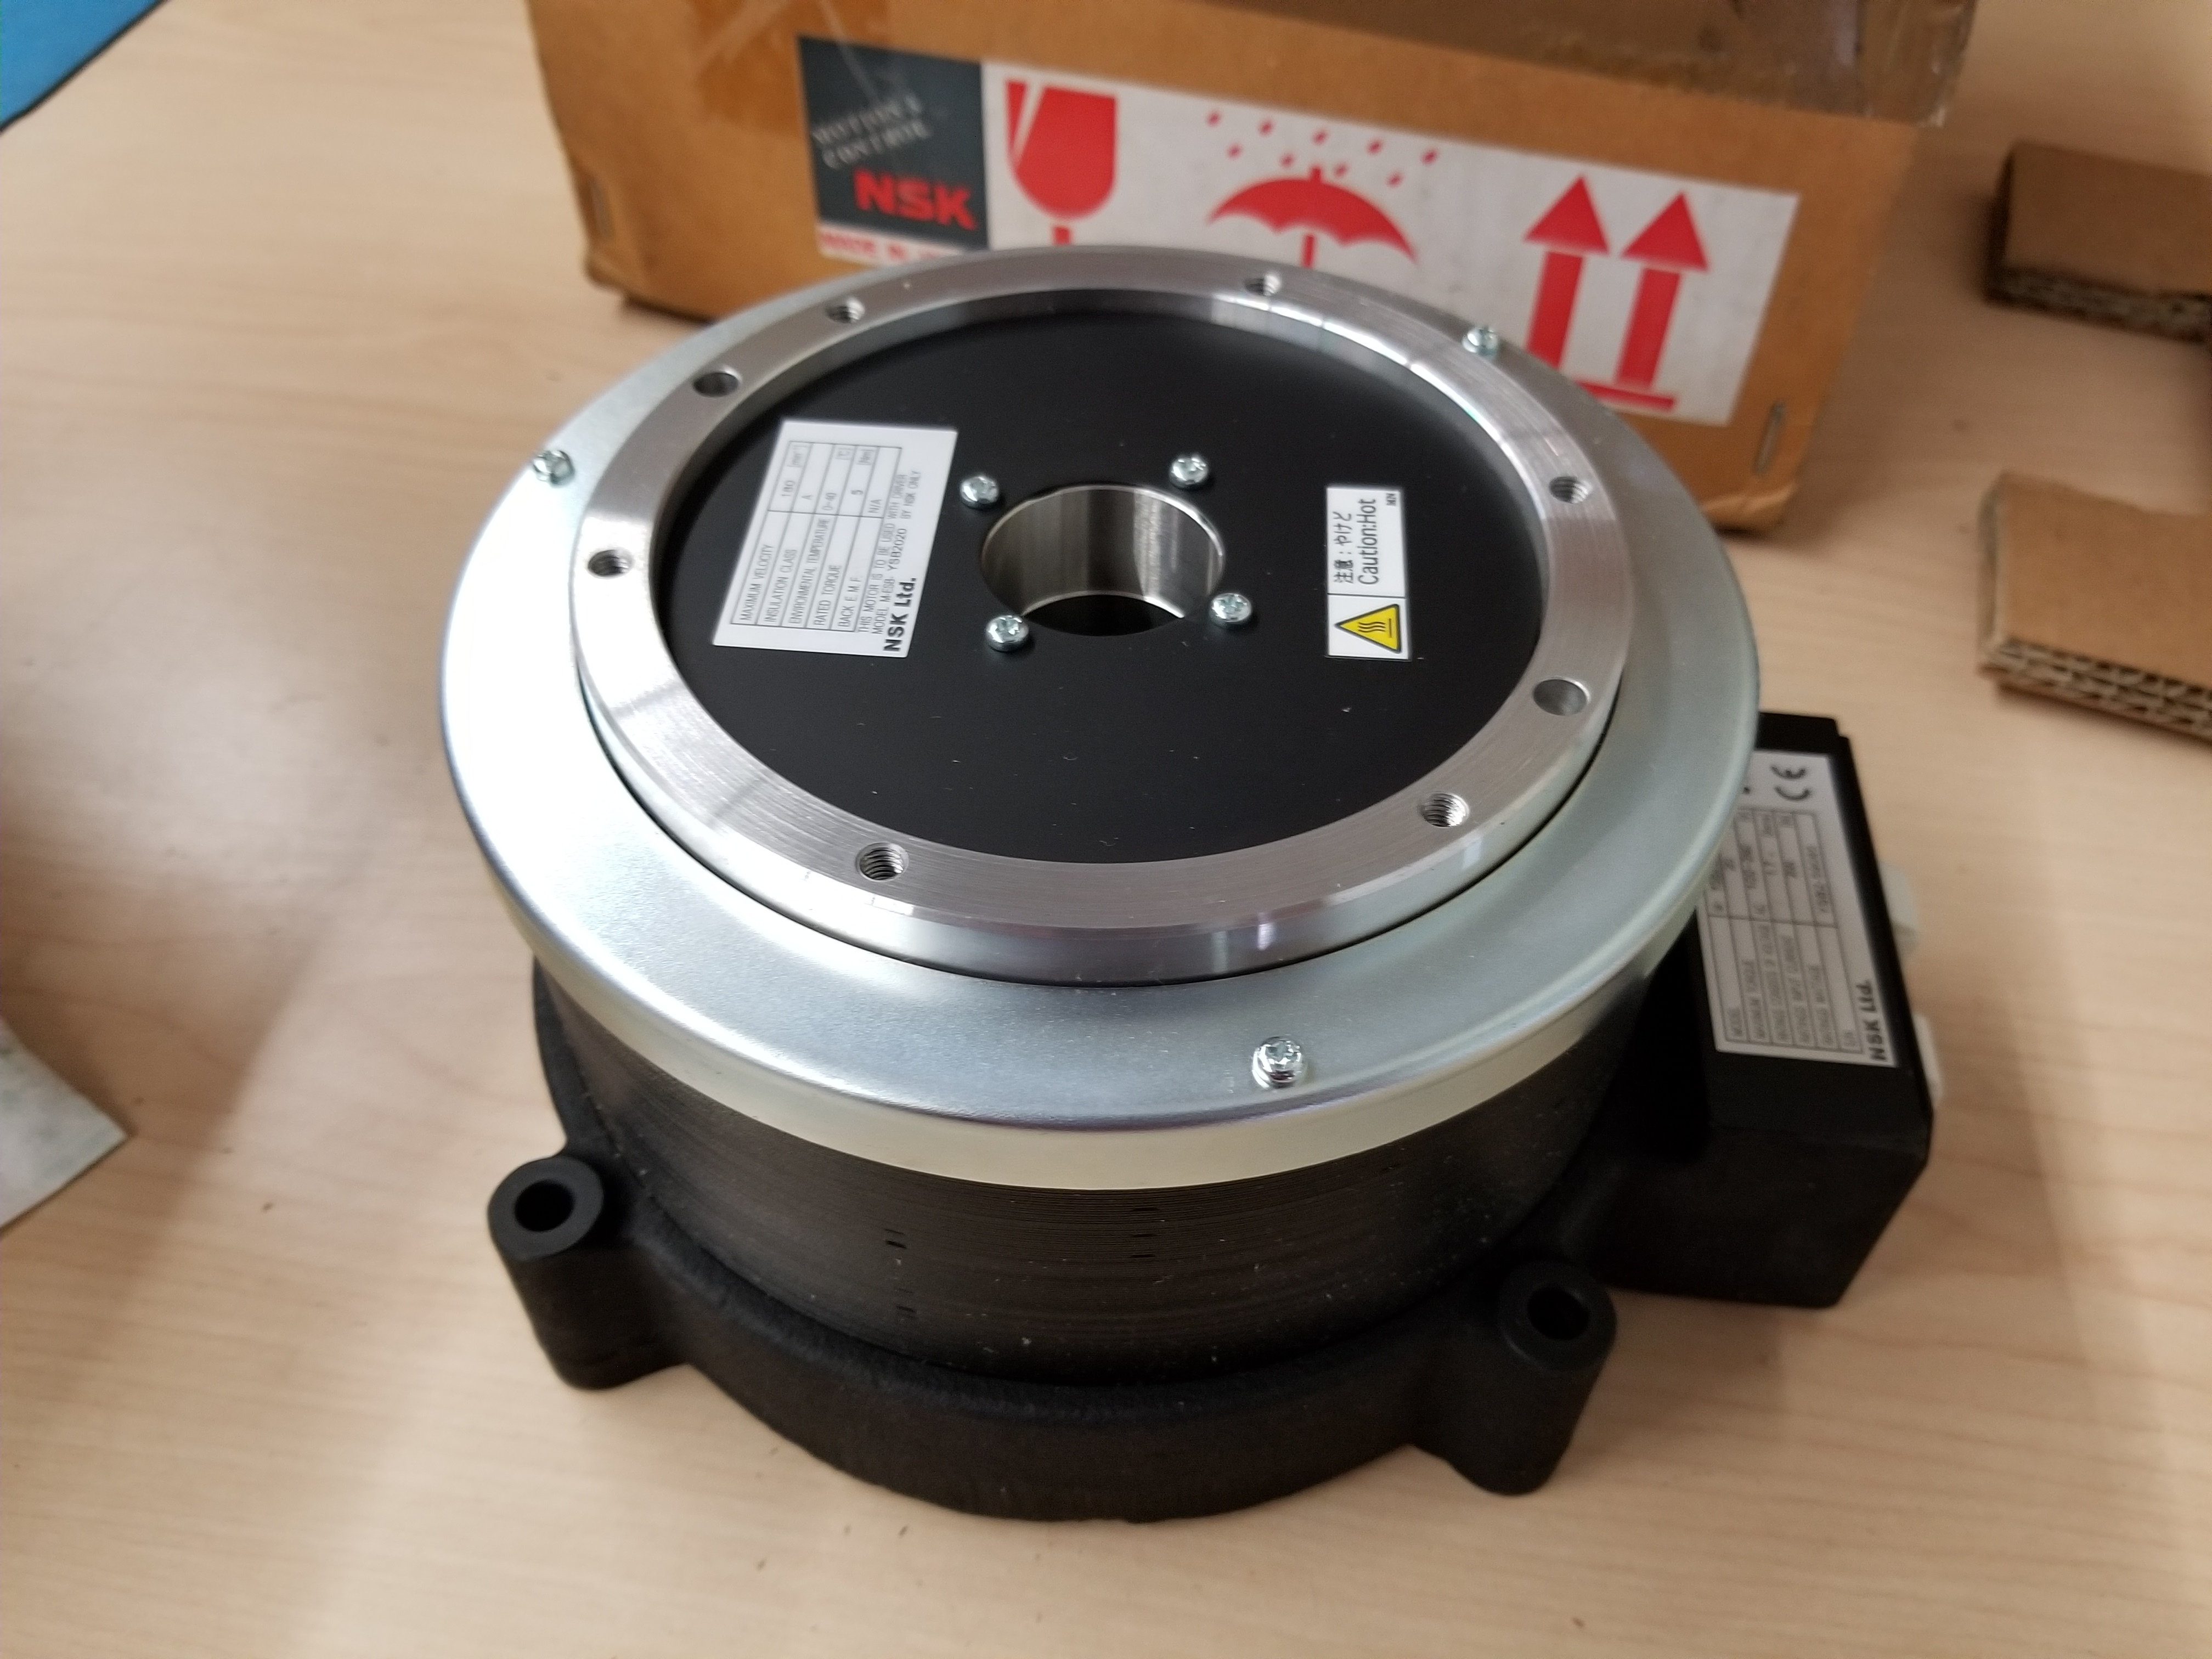 New NSK Megatorque Motor With Used ESB Drive And Pendant - Image 3 of 19